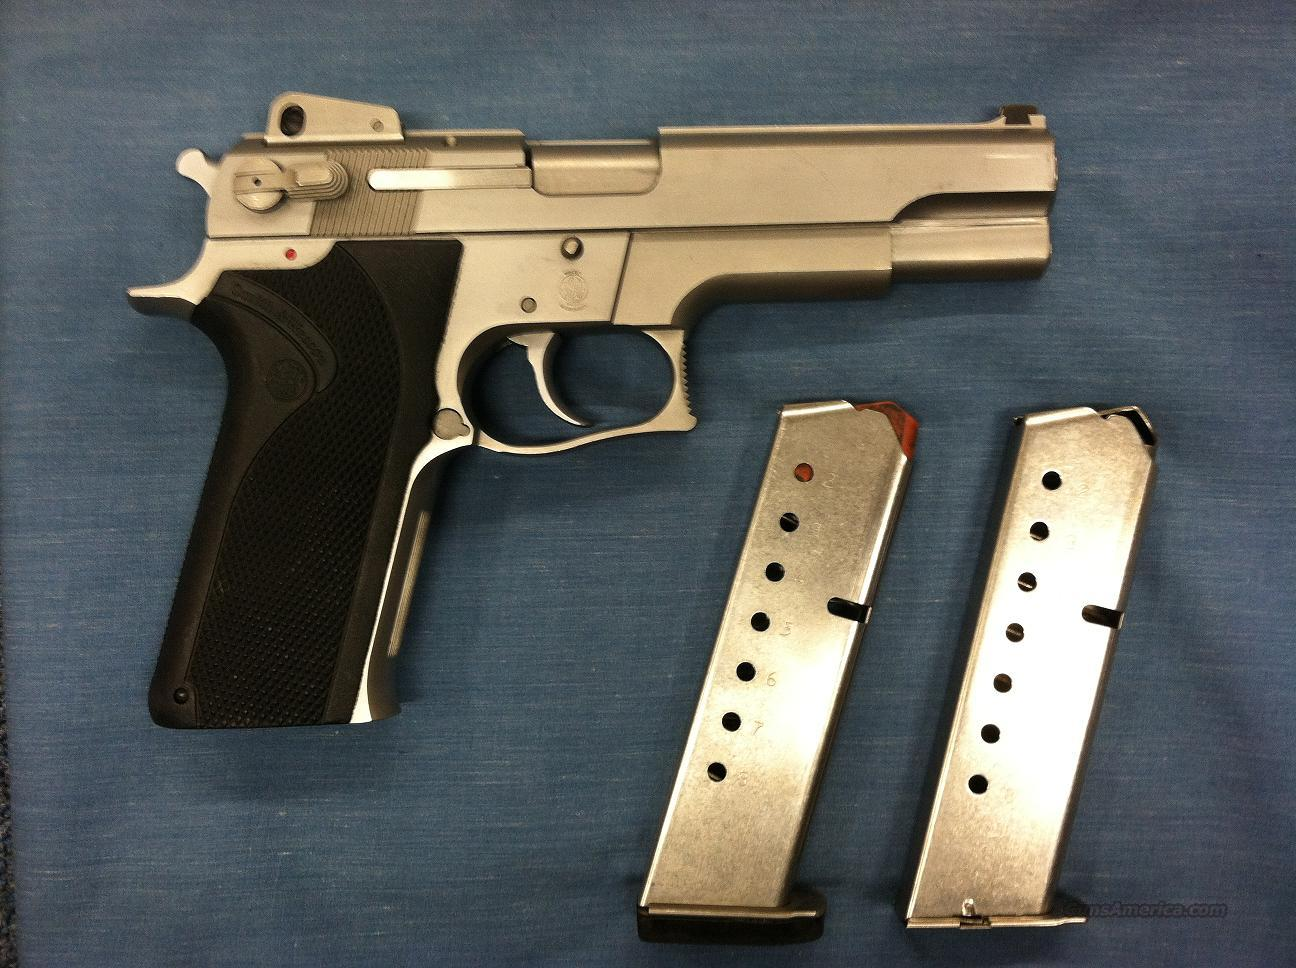 Smith and wesson airsoft guns